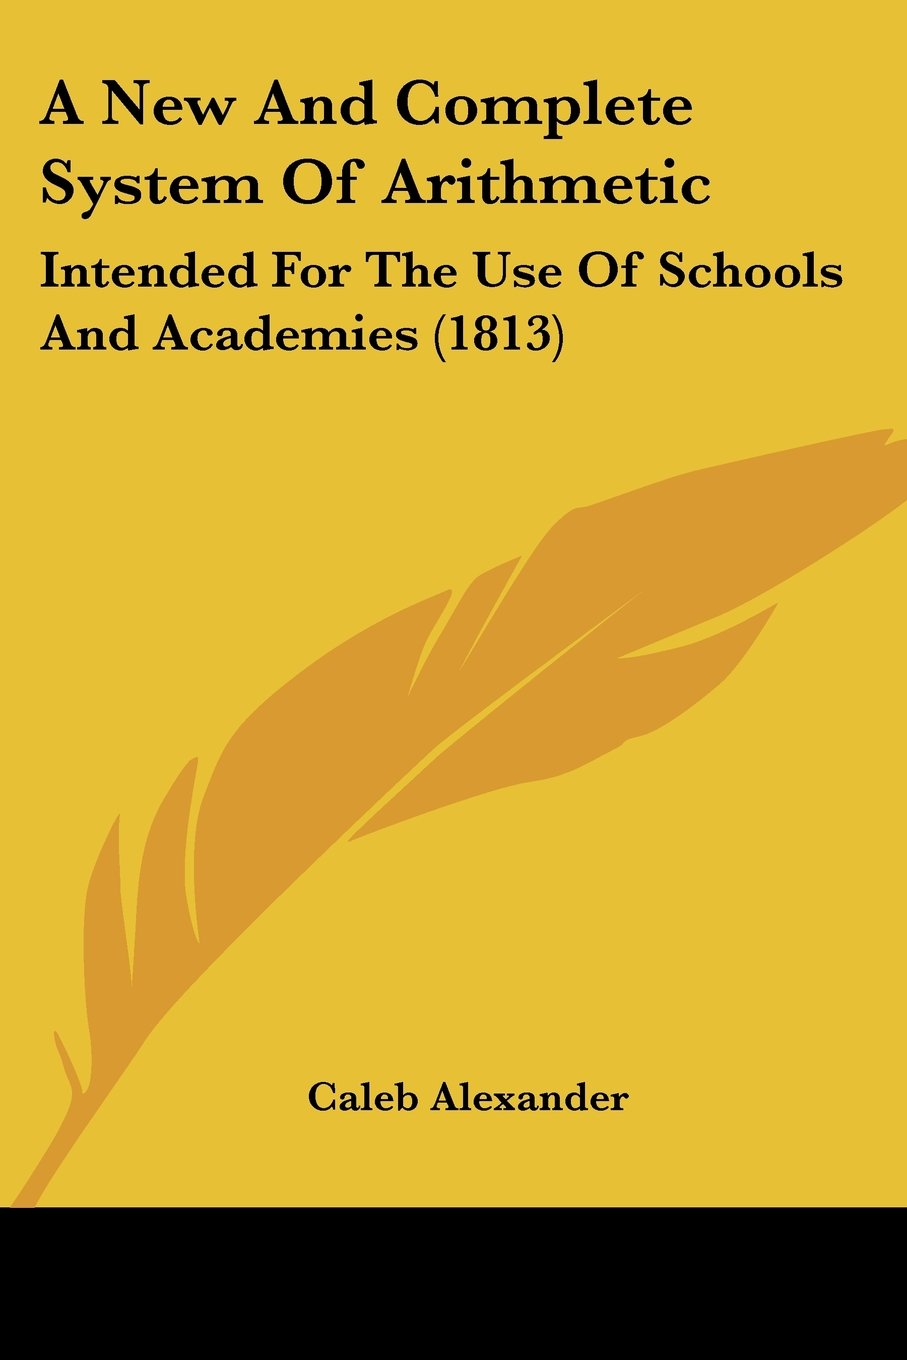 Download A New And Complete System Of Arithmetic: Intended For The Use Of Schools And Academies (1813) pdf epub